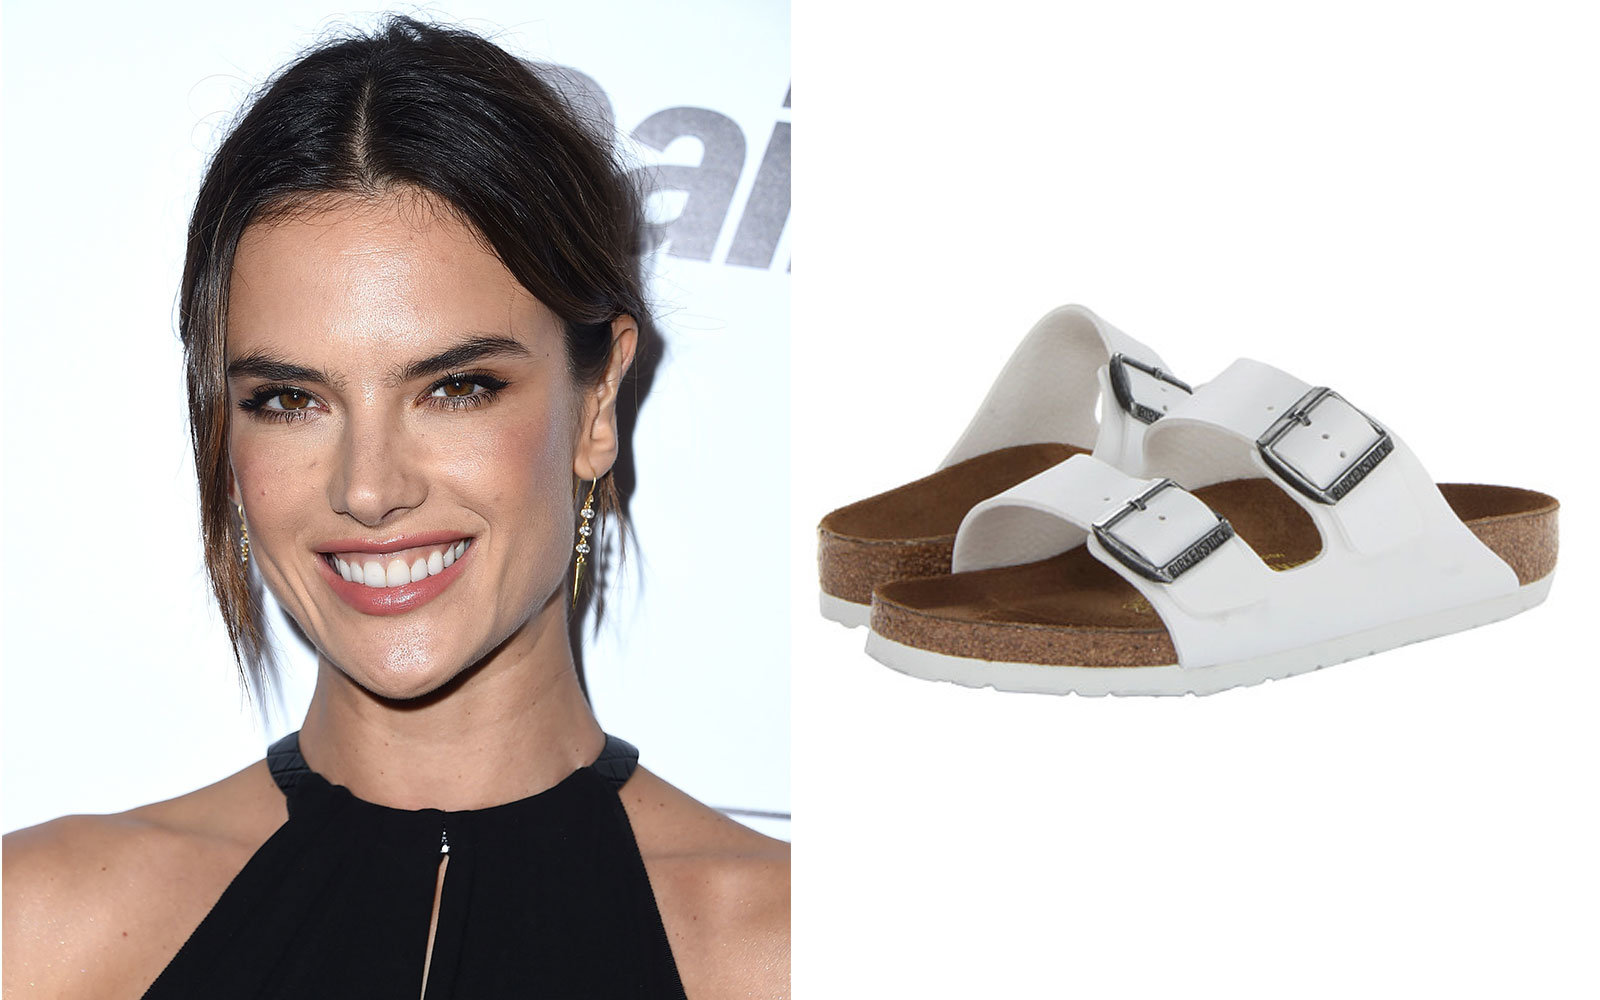 c9b817bcc8f Alessandra Ambrosio in Birkenstock Arizona Sandals. Celebrity Travel Shoes